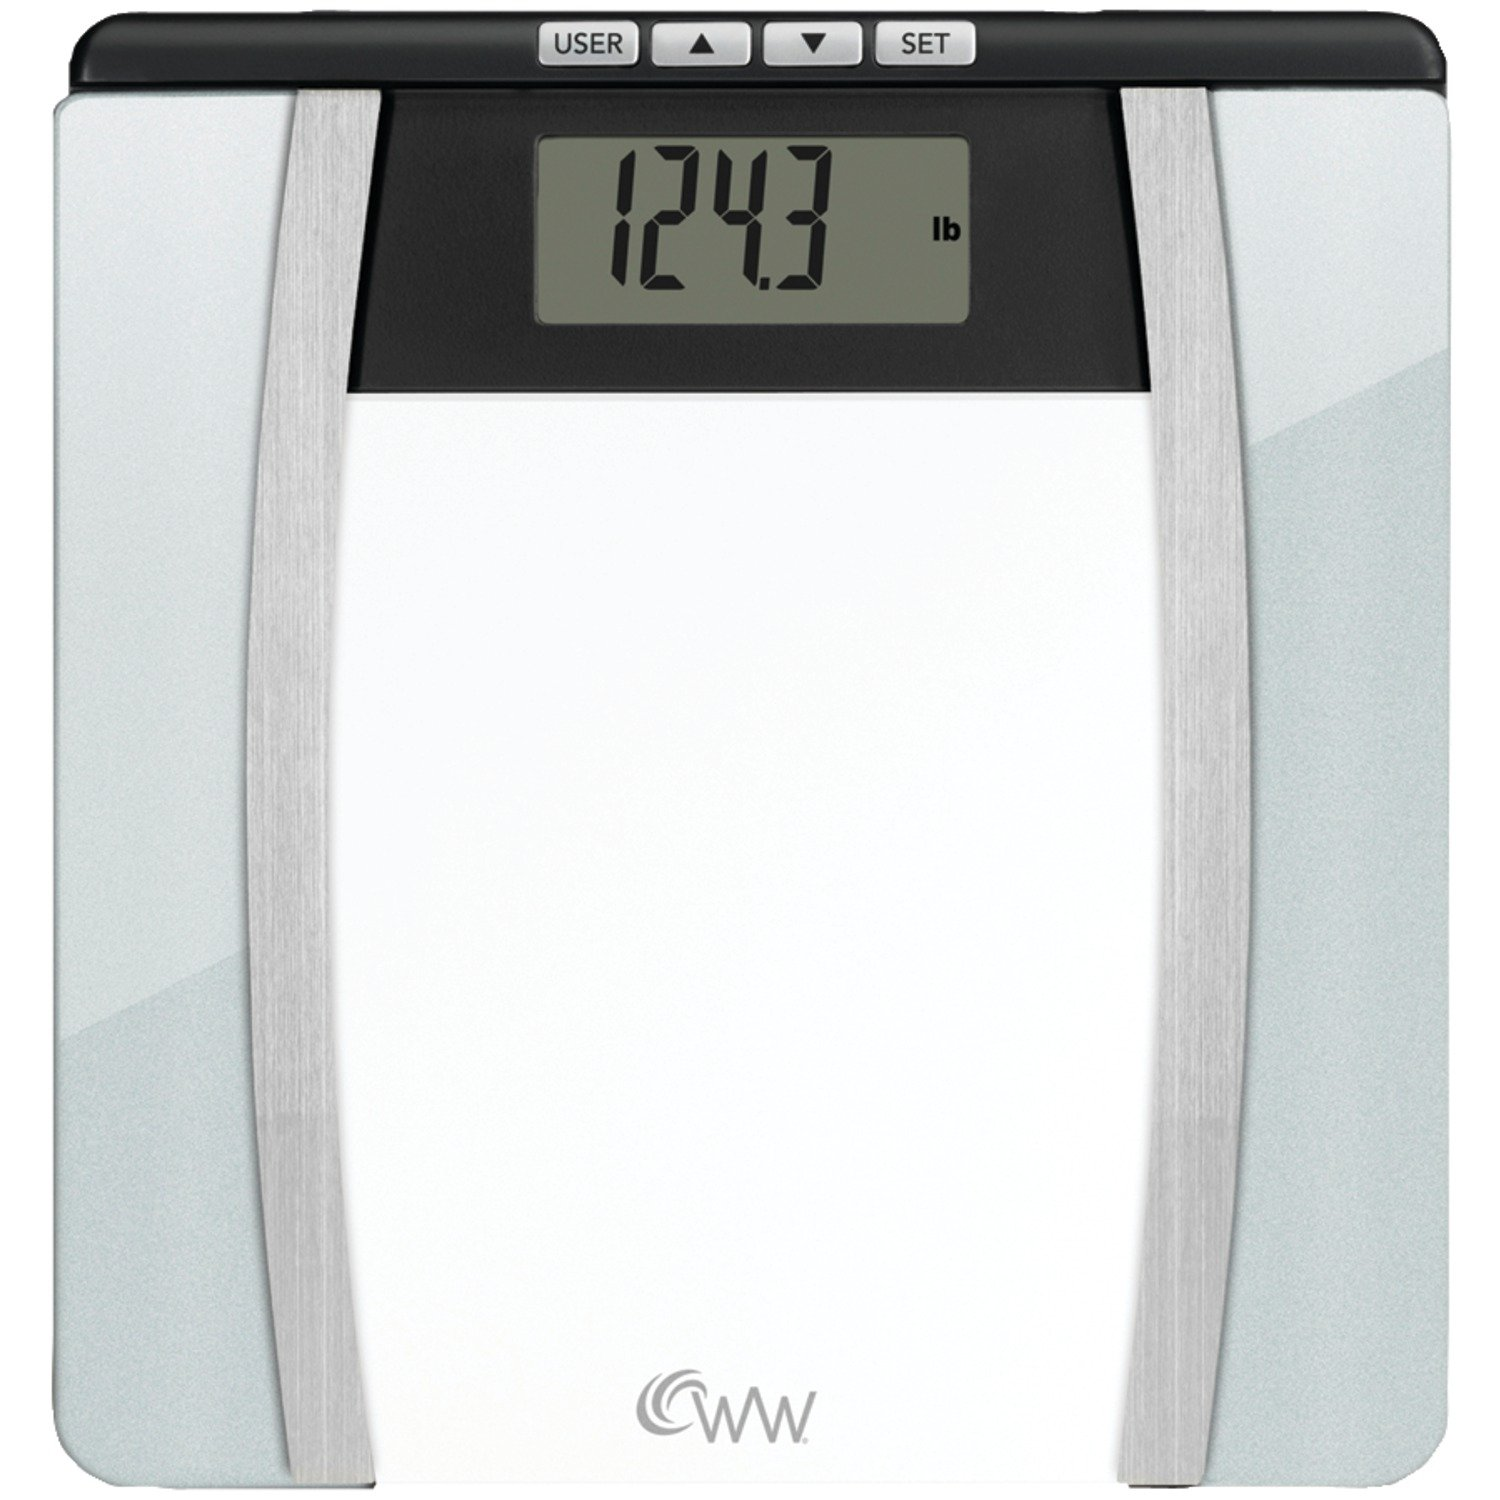 CONAIR CNRWW701Y, Weight Watchers Body Analysis Scale WW701YF